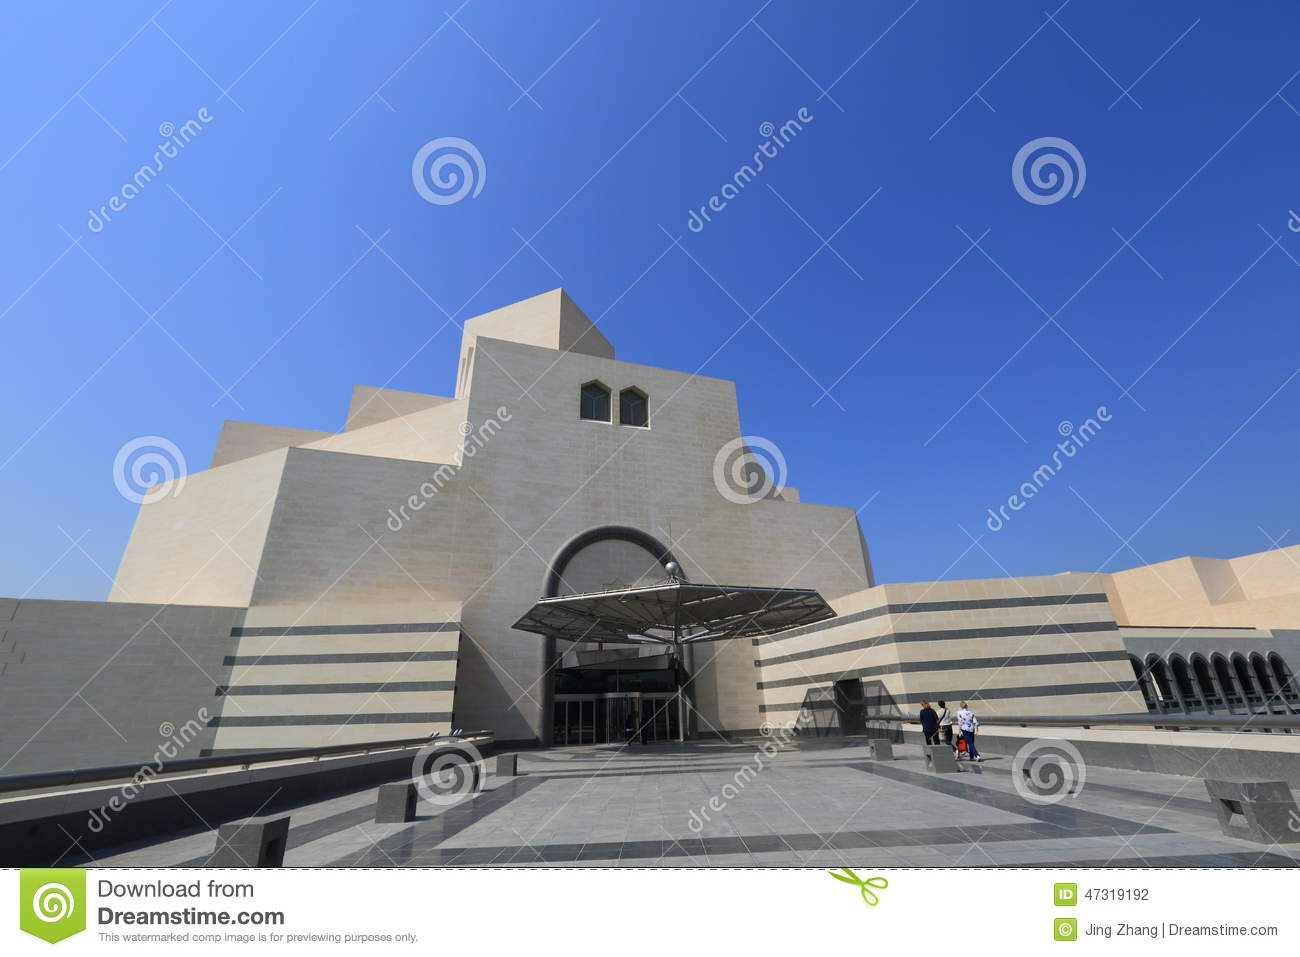 The museum of islamic art in qatar doha editorial for Architectural design company in qatar